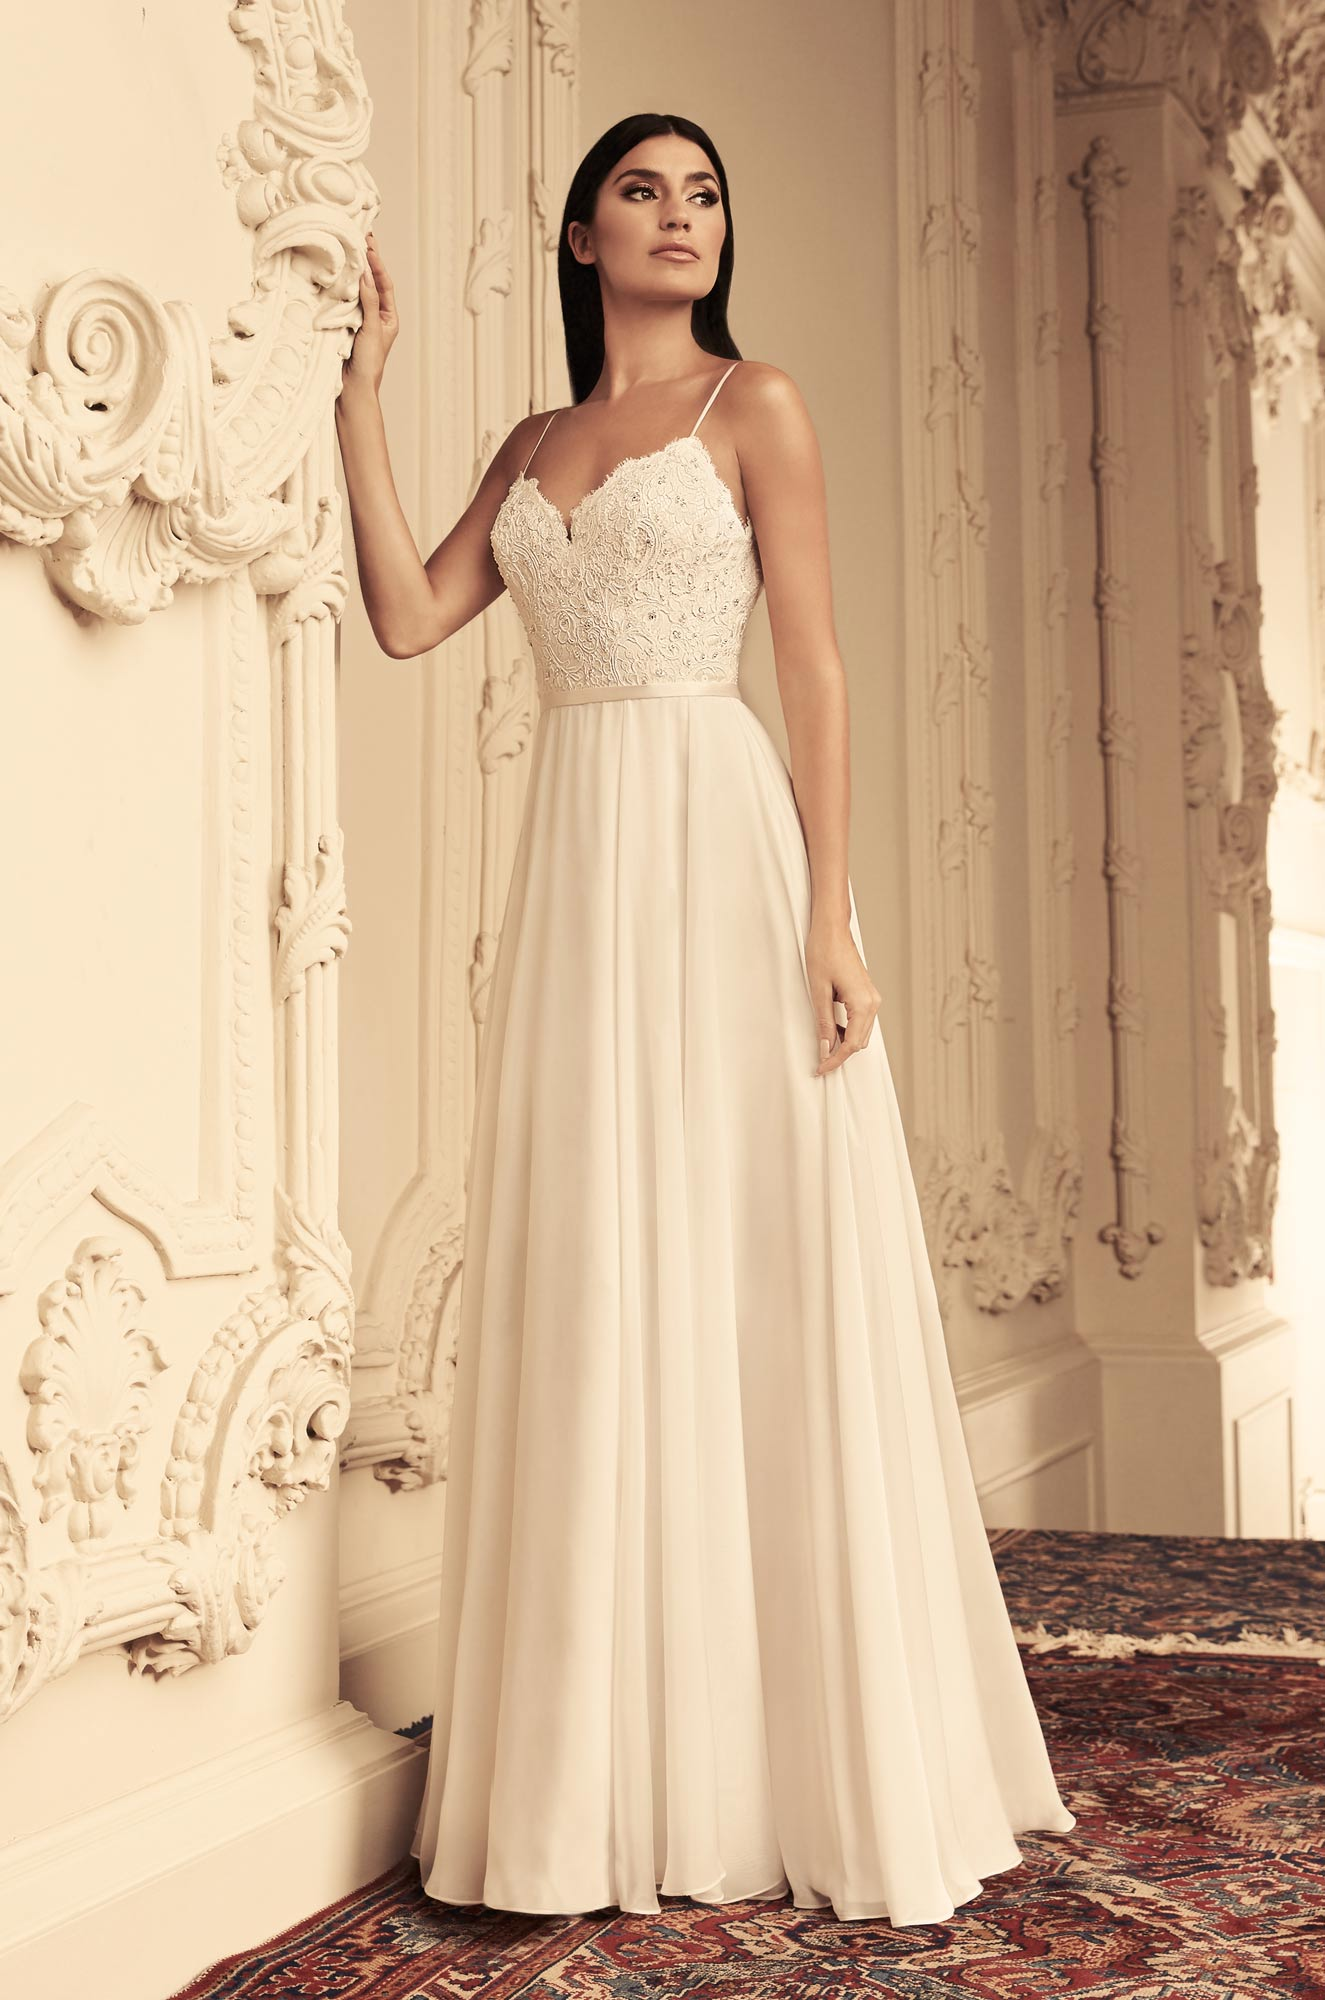 Mira Couture Paloma Blanca 4814 Wedding Dress Bridal Gown Chicago Boutique Front